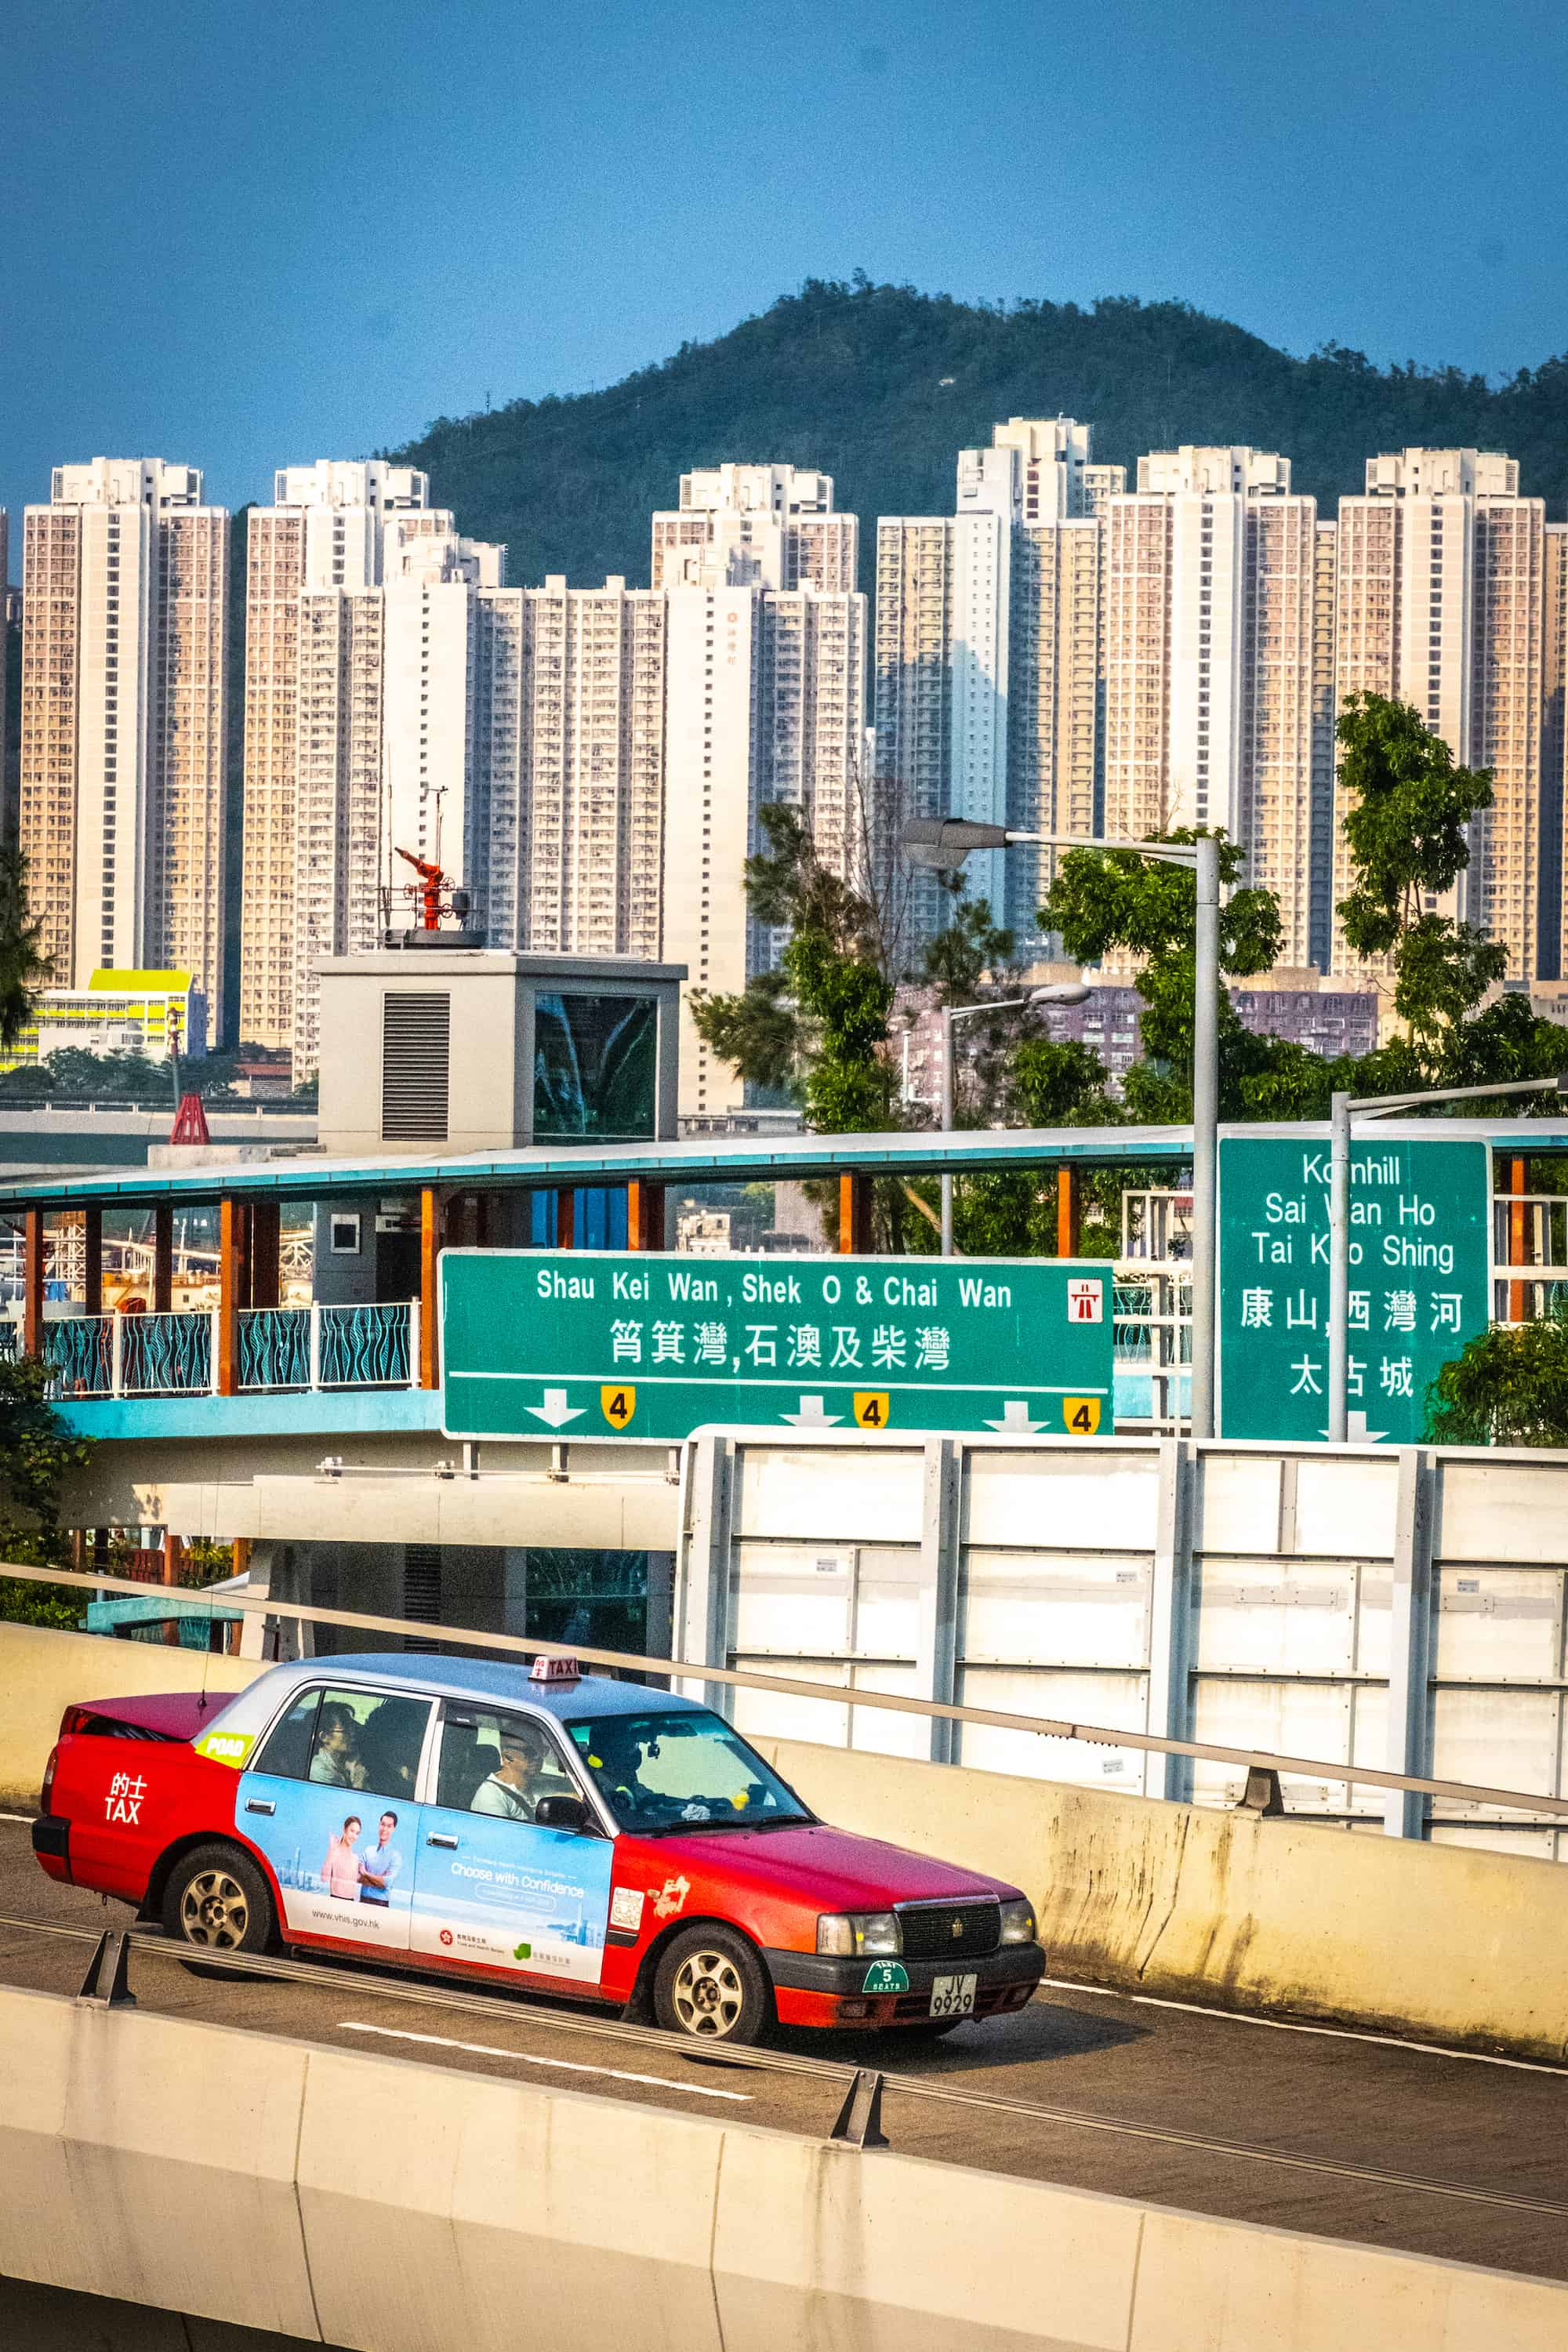 Places to see in Hong Kong City